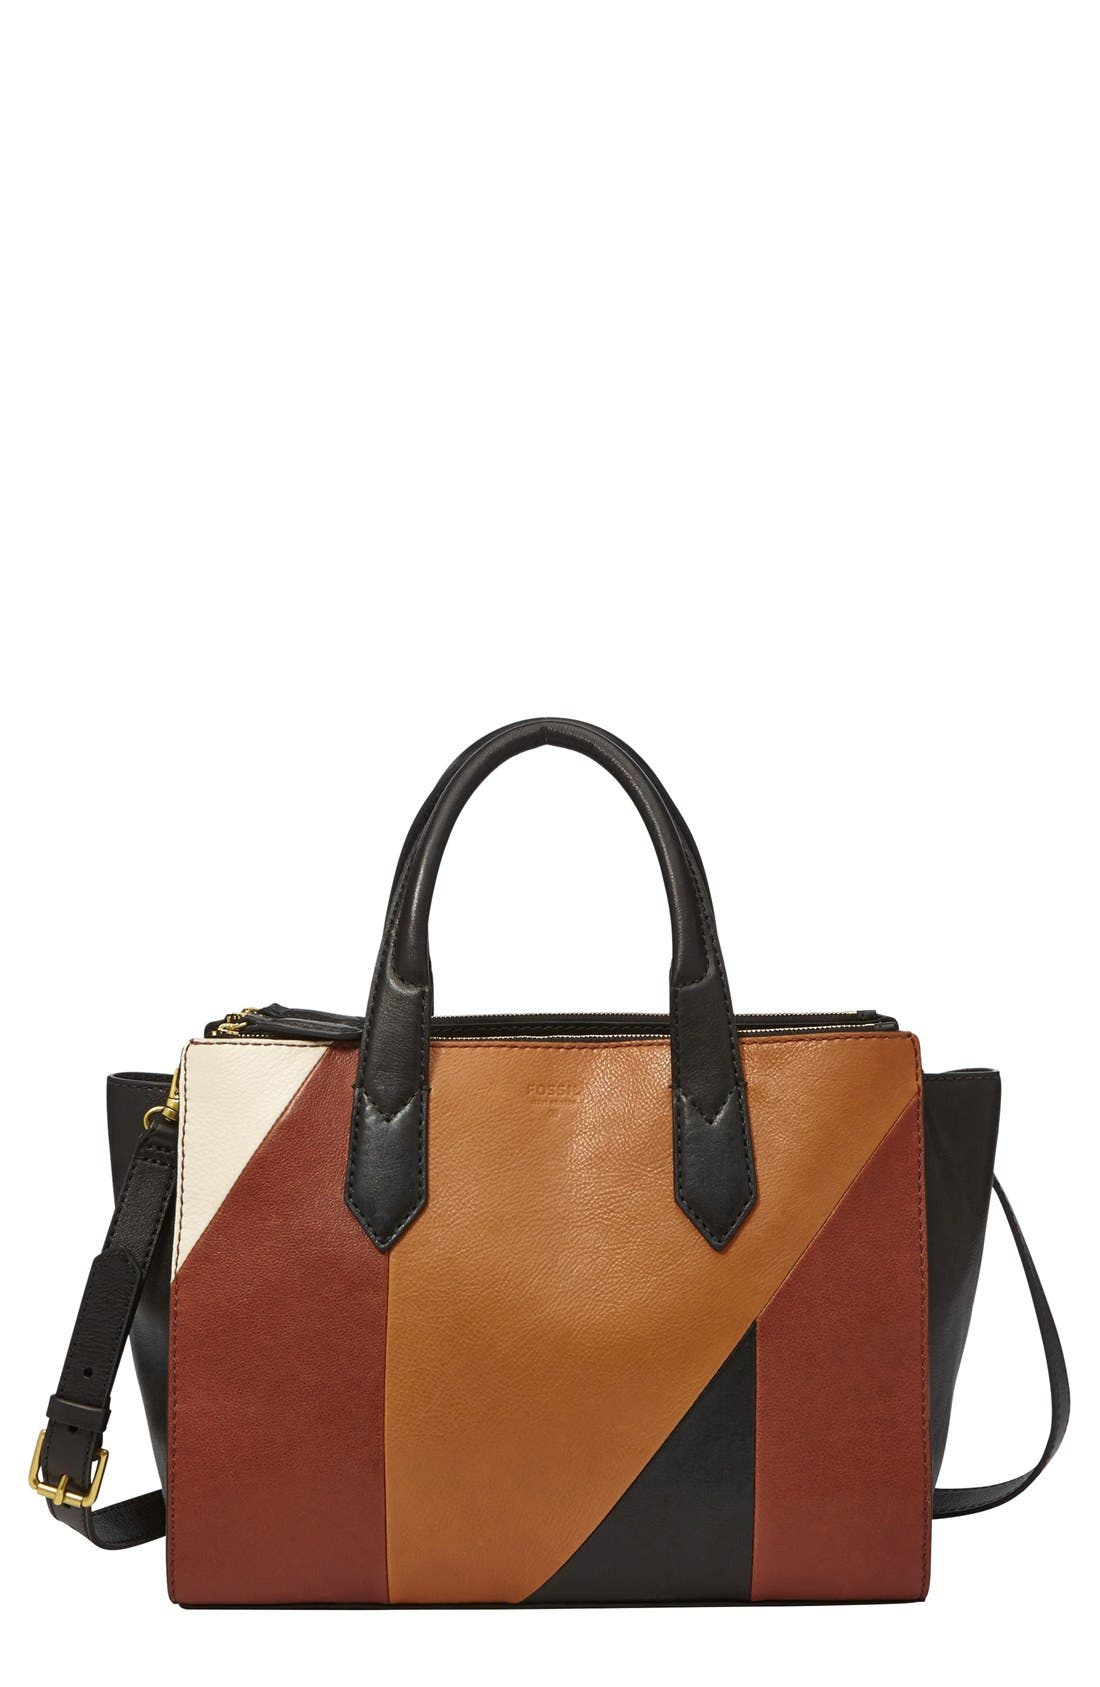 Alternate Image 1 Selected - Fossil 'Knox' Patchwork Leather Shopper